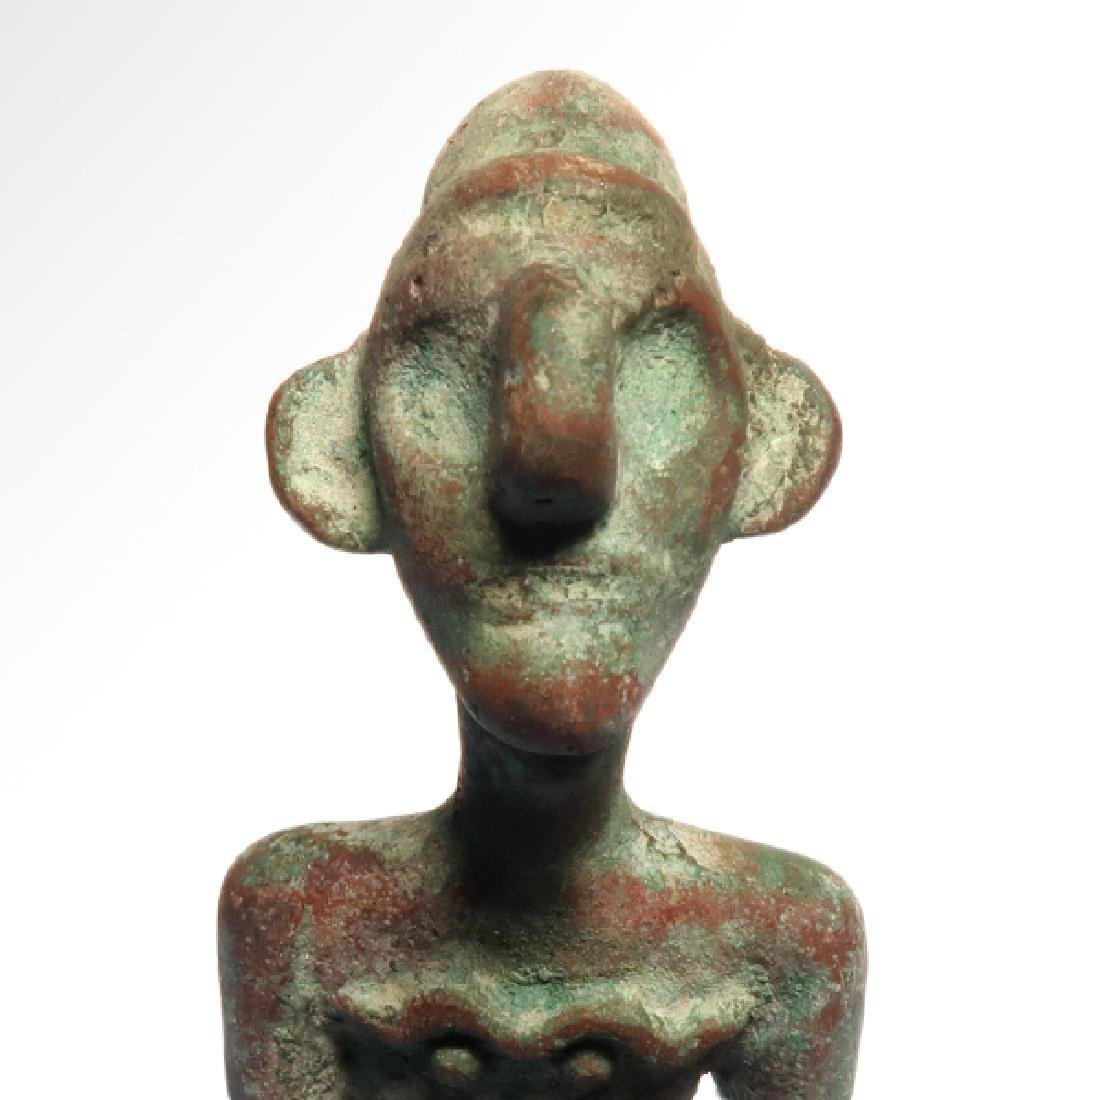 Canaanite Bust of a Deity, c. 2nd Millennium BC - 2